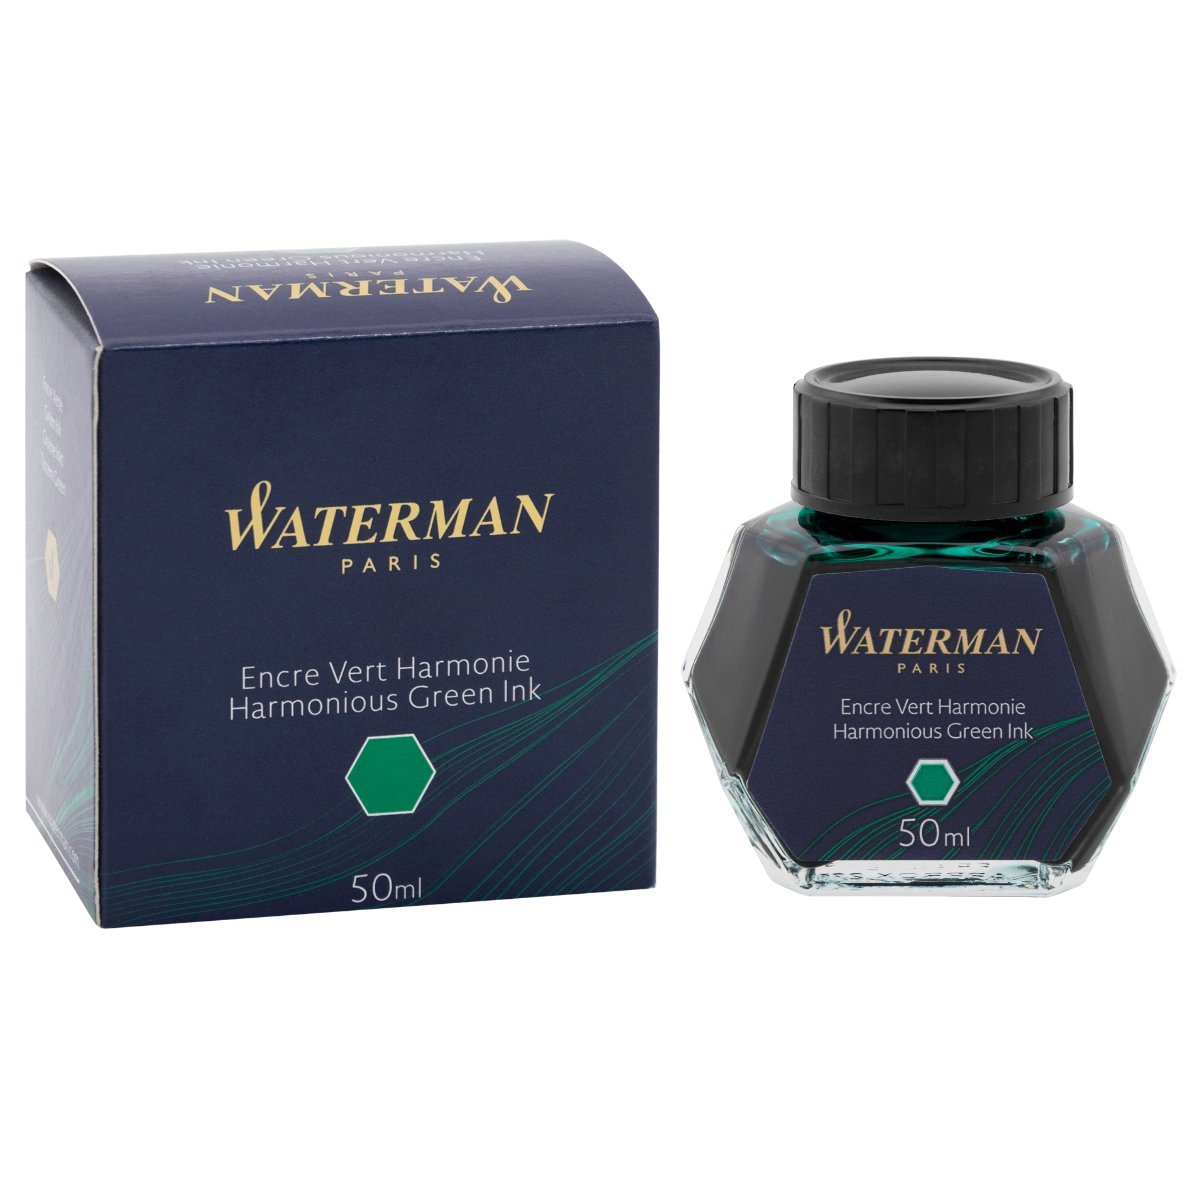 Waterman atrament ZIELONY